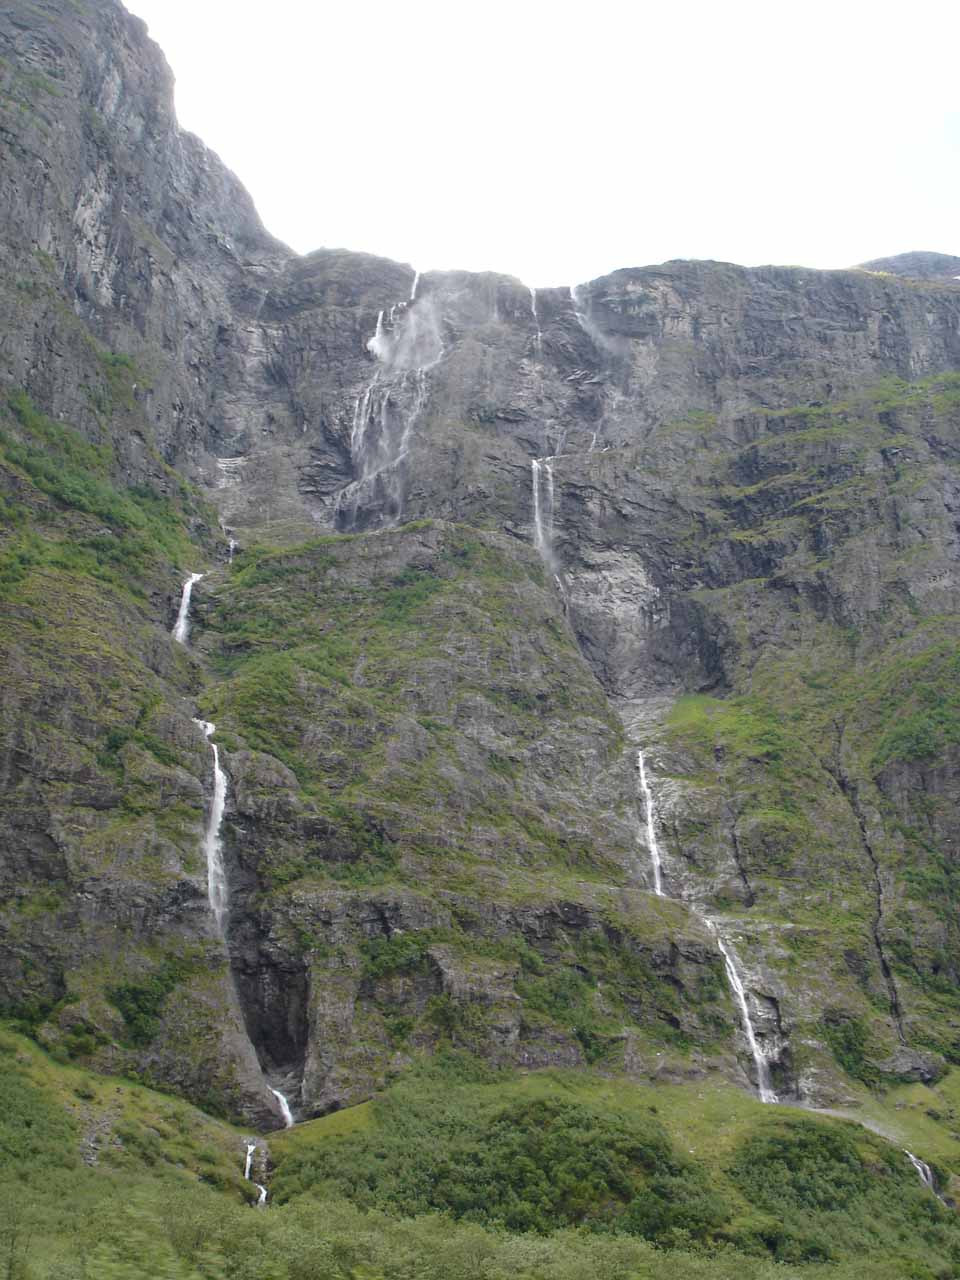 Julie noticed a few other strandy waterfalls as we were approaching Kjelfossen while driving within Nærøydal Valley